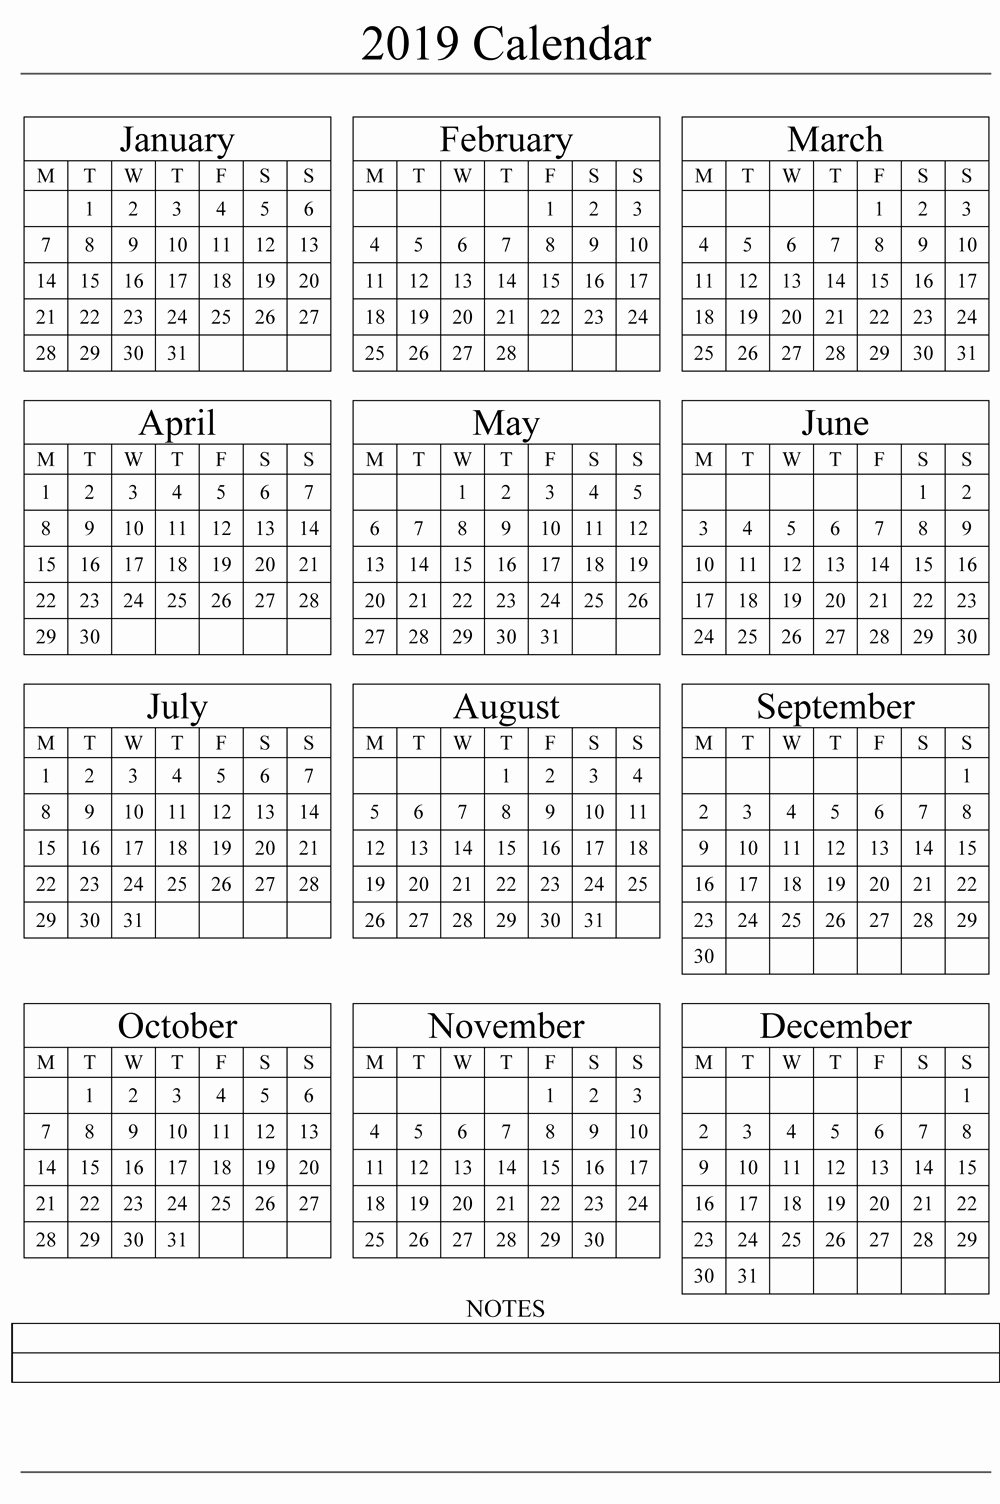 printable may calendar 2019 free printable calendar 2019 templates::Download 2019 Printable Calendar